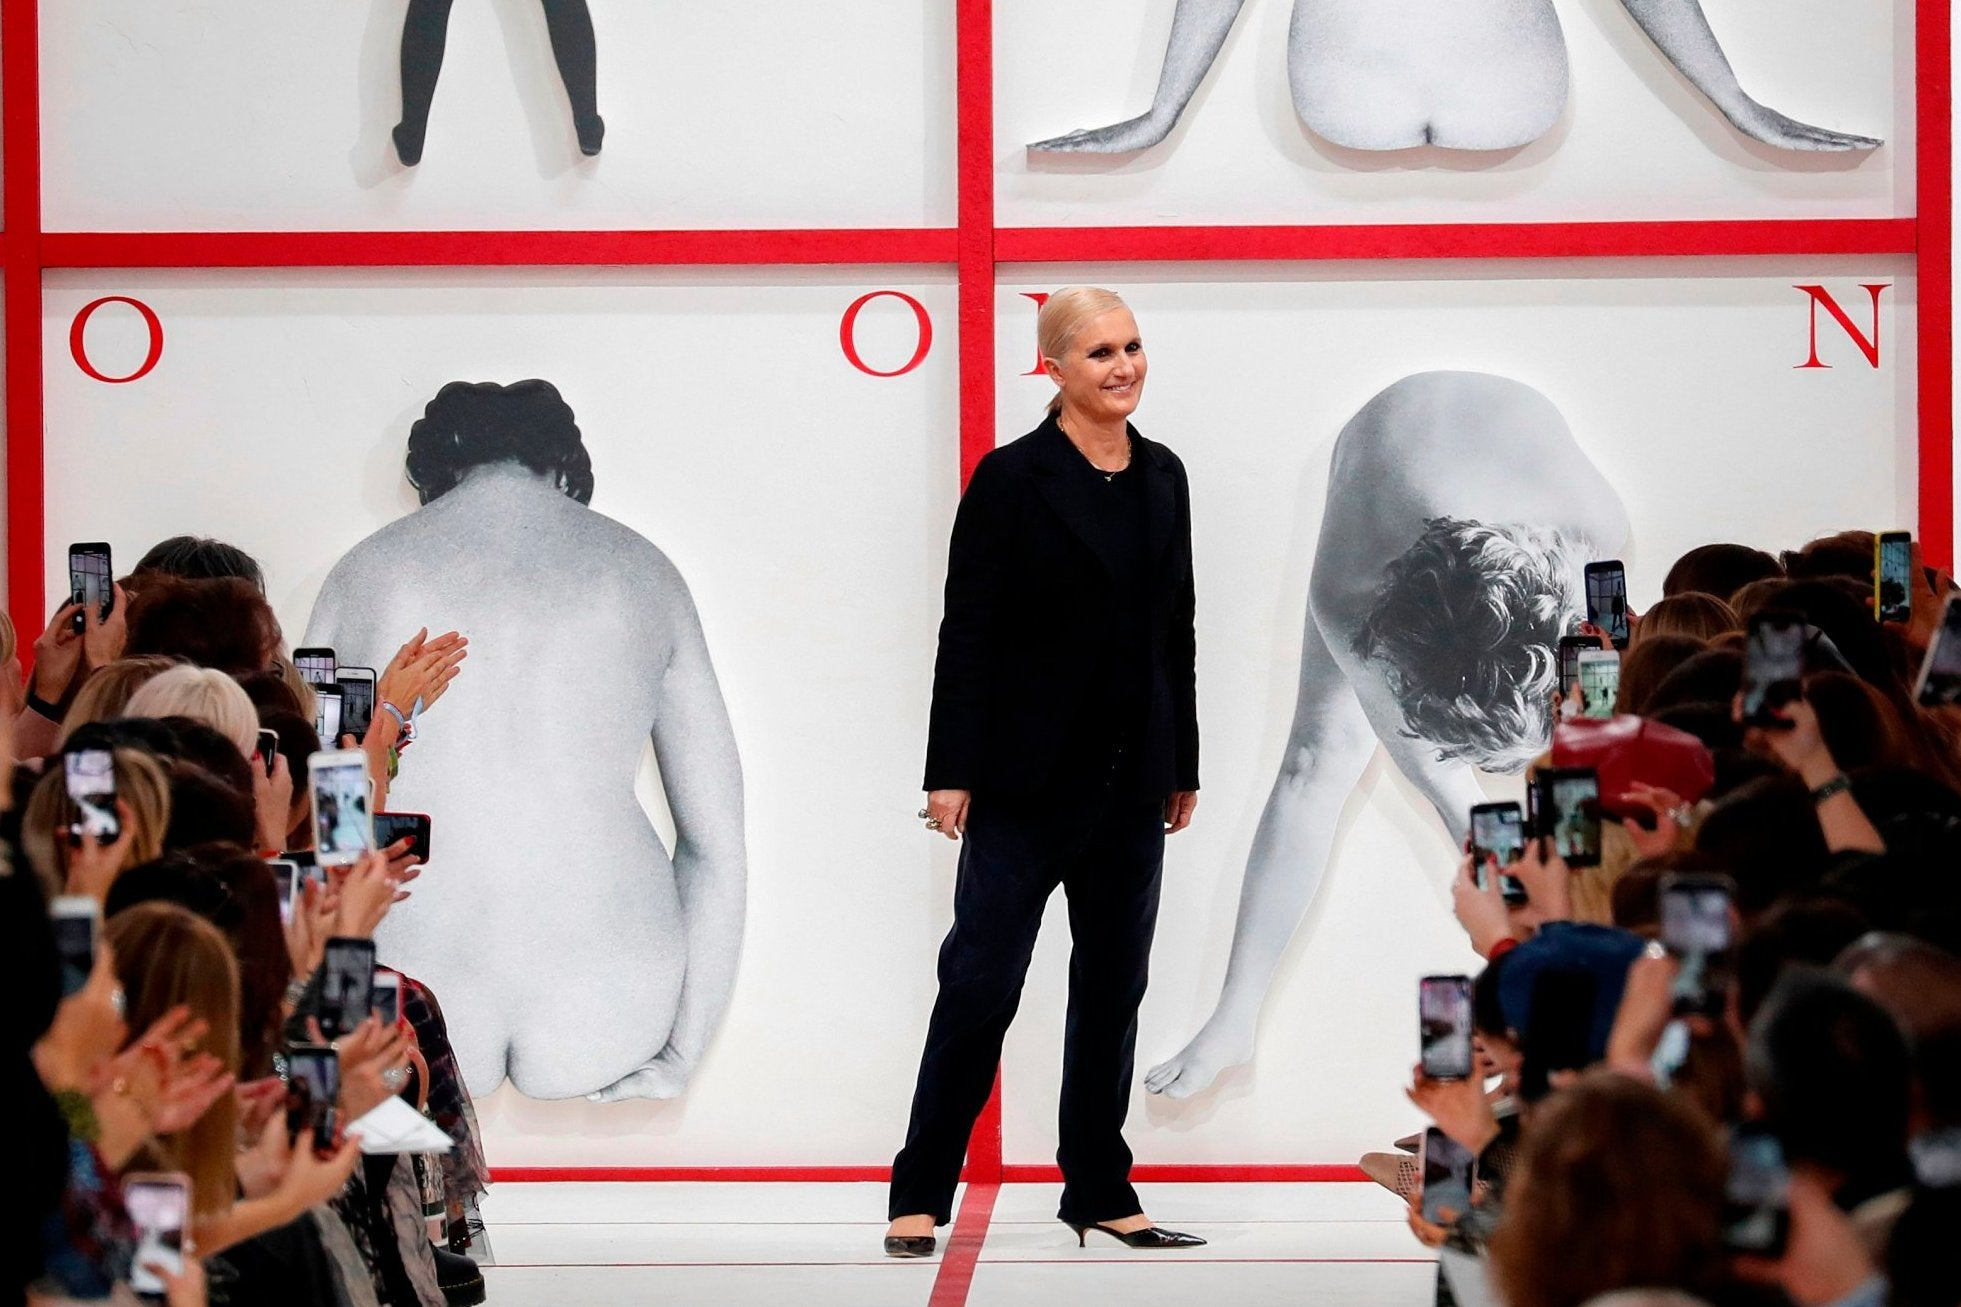 Paris Fashion Week Dior Show Pays Homage To The Late Karl Lagerfeld